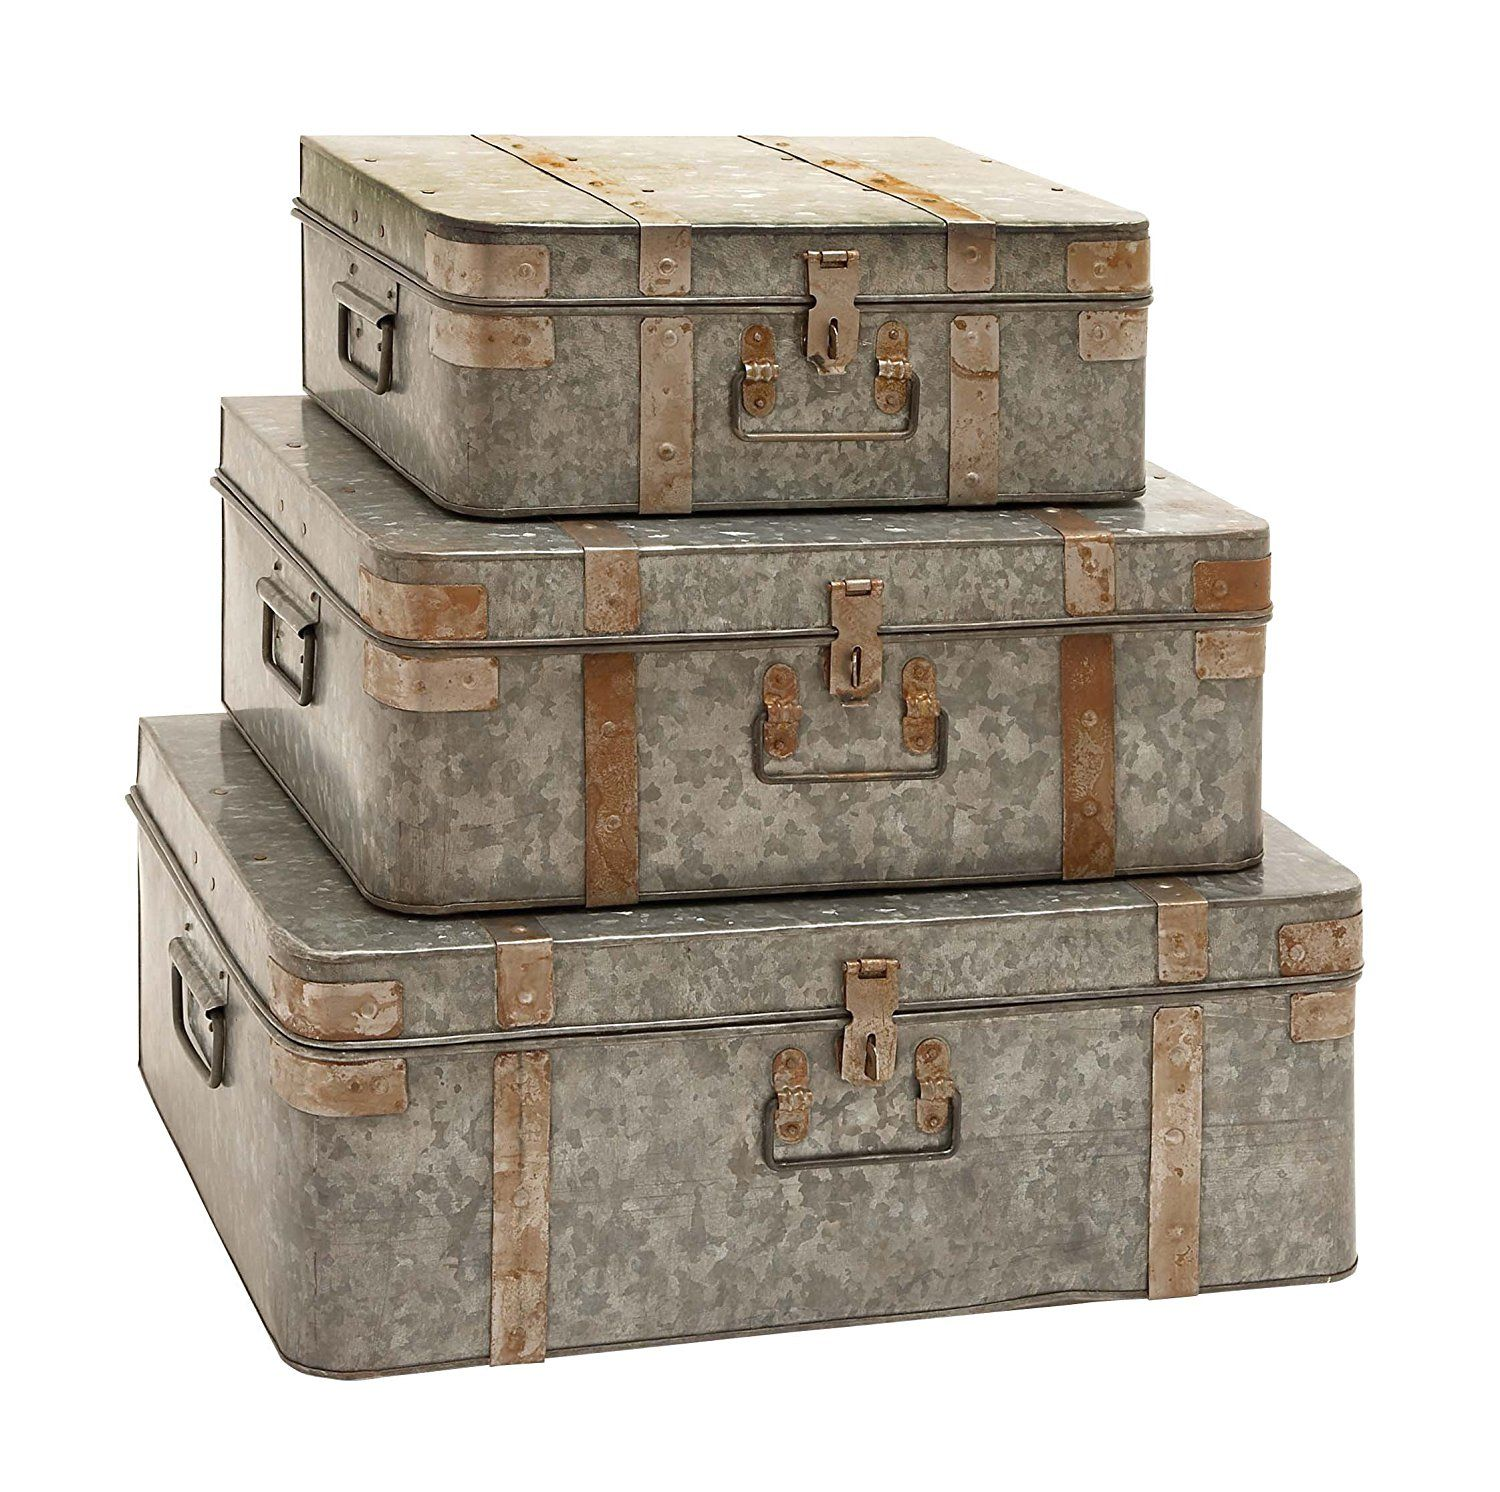 "Amazon.com: Deco 79 38190 Metal Galvan Trunks (Set of 3), 21""/18""/15"": Kitchen & Dining"